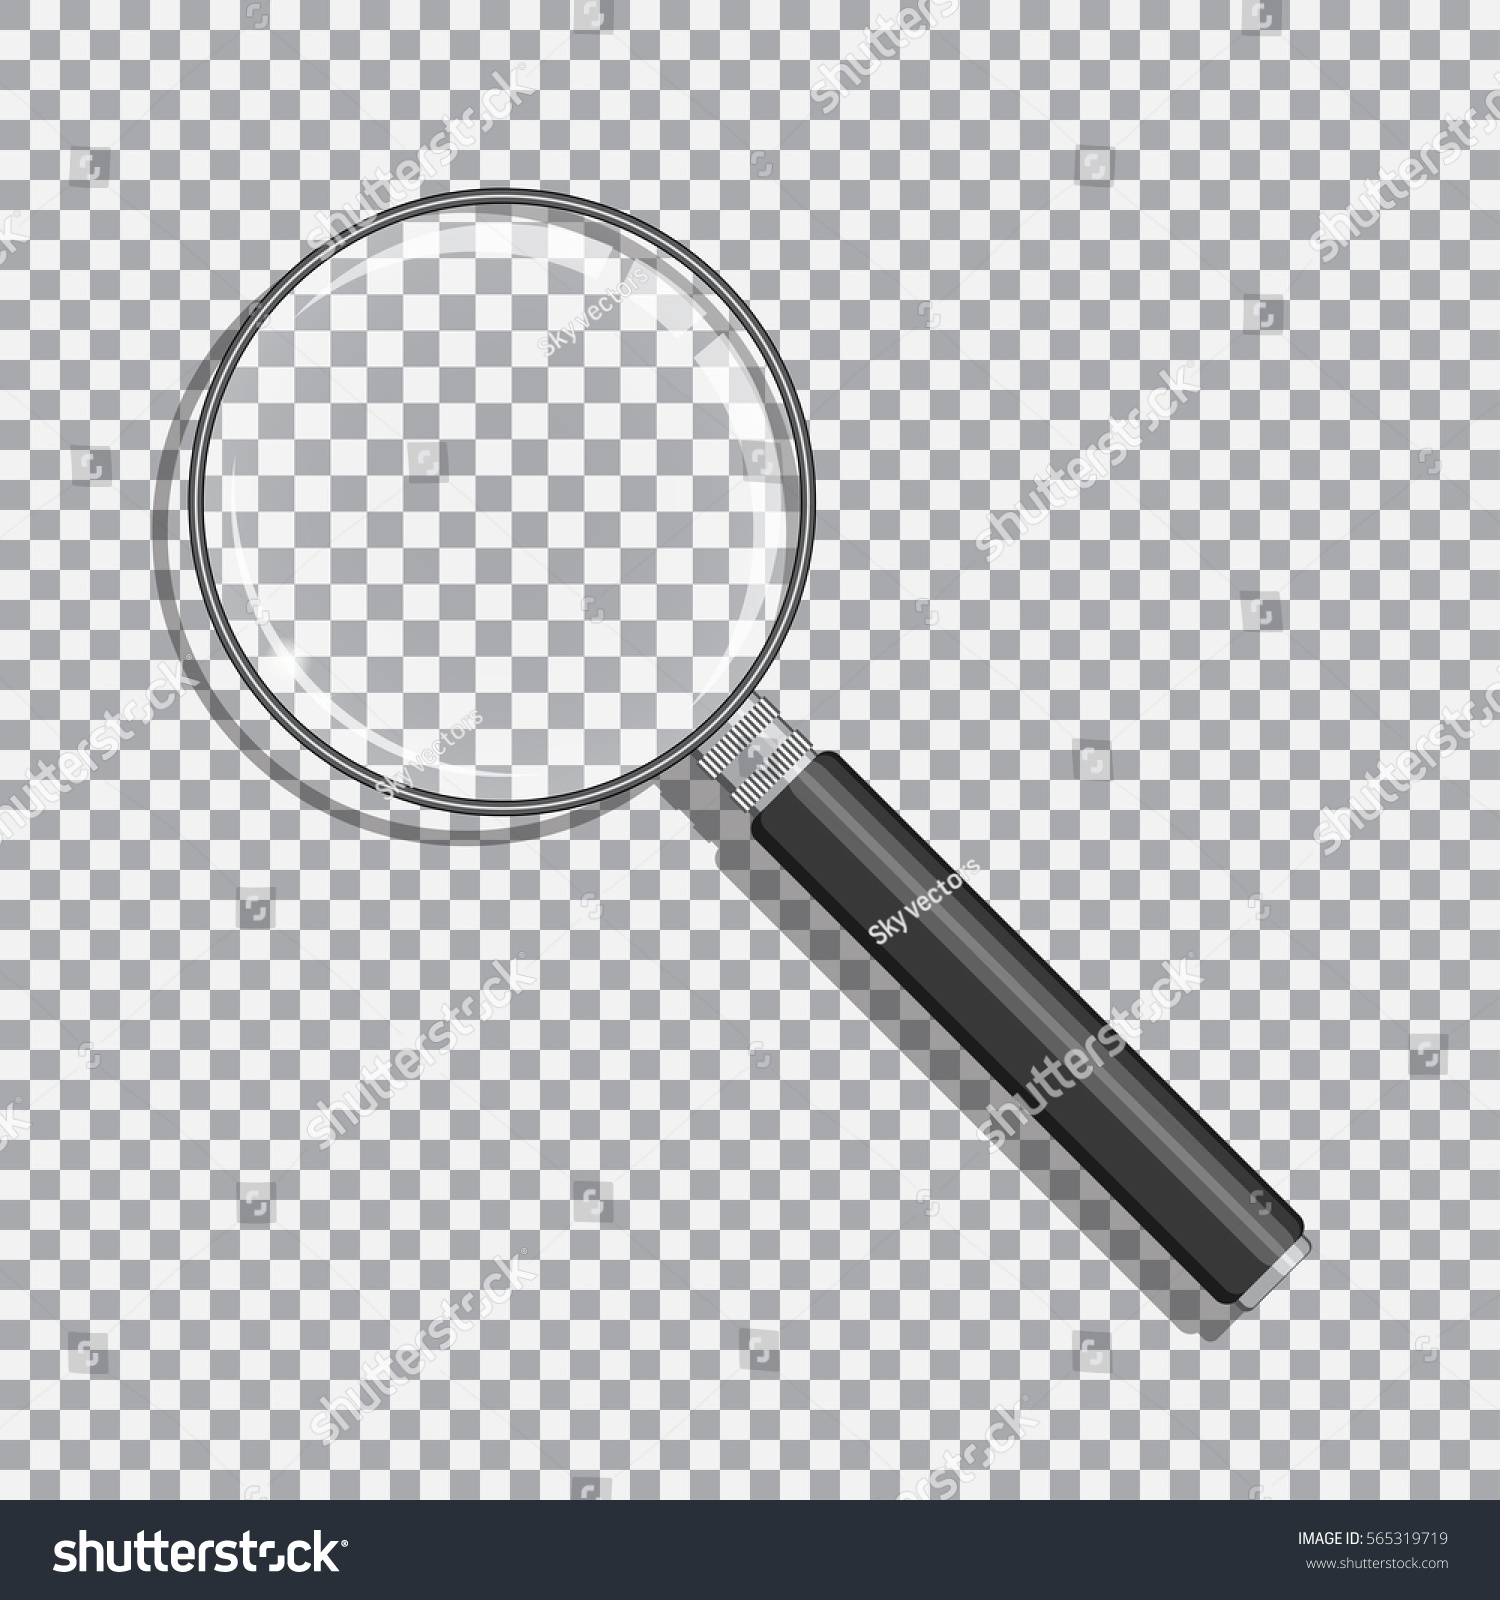 Background image transparency - Realistic Magnifying Glass With Transparency Black Handle And Opacity Background